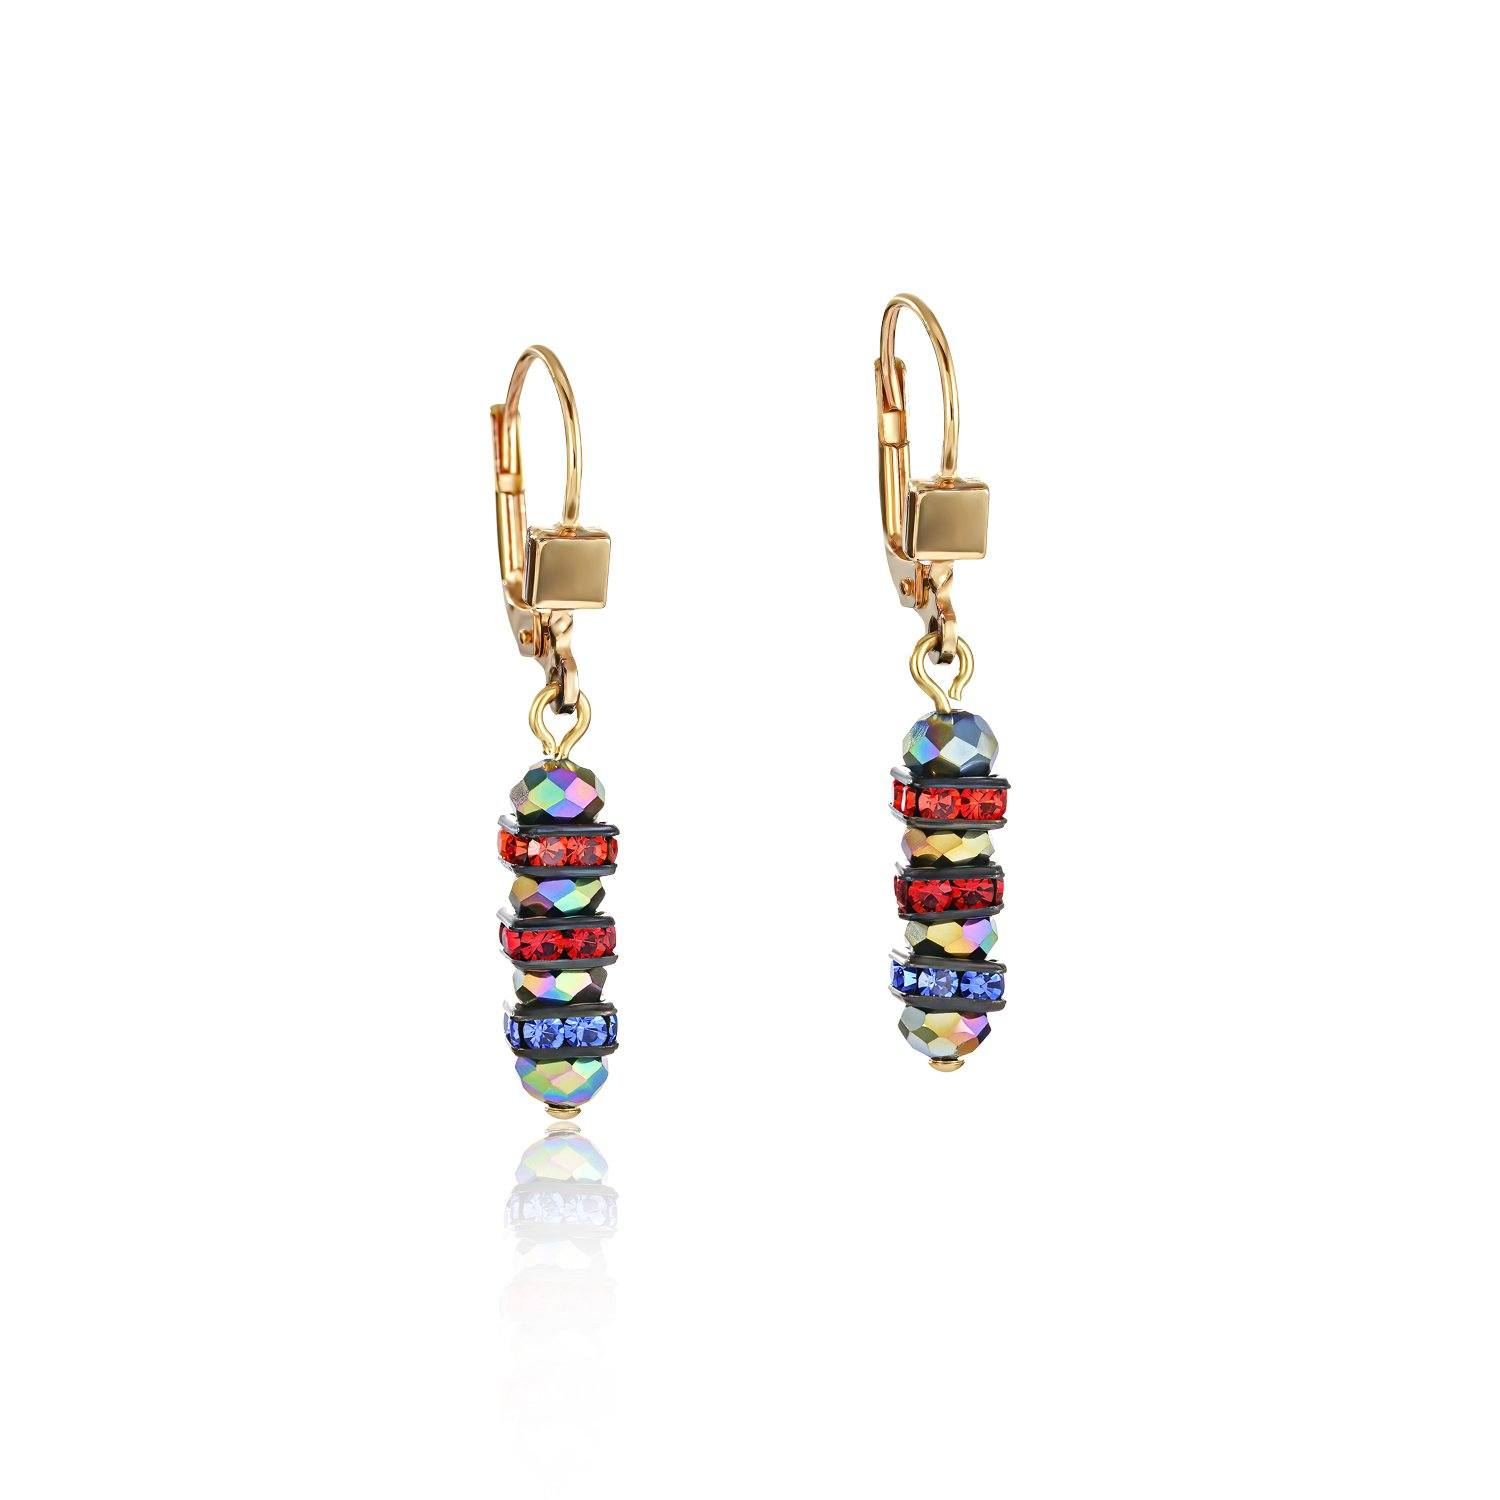 Coeur de Lion Rhinestone & Glass Earrings in Multicolour 4974/20-1500 Jewellery Coeur de Lion